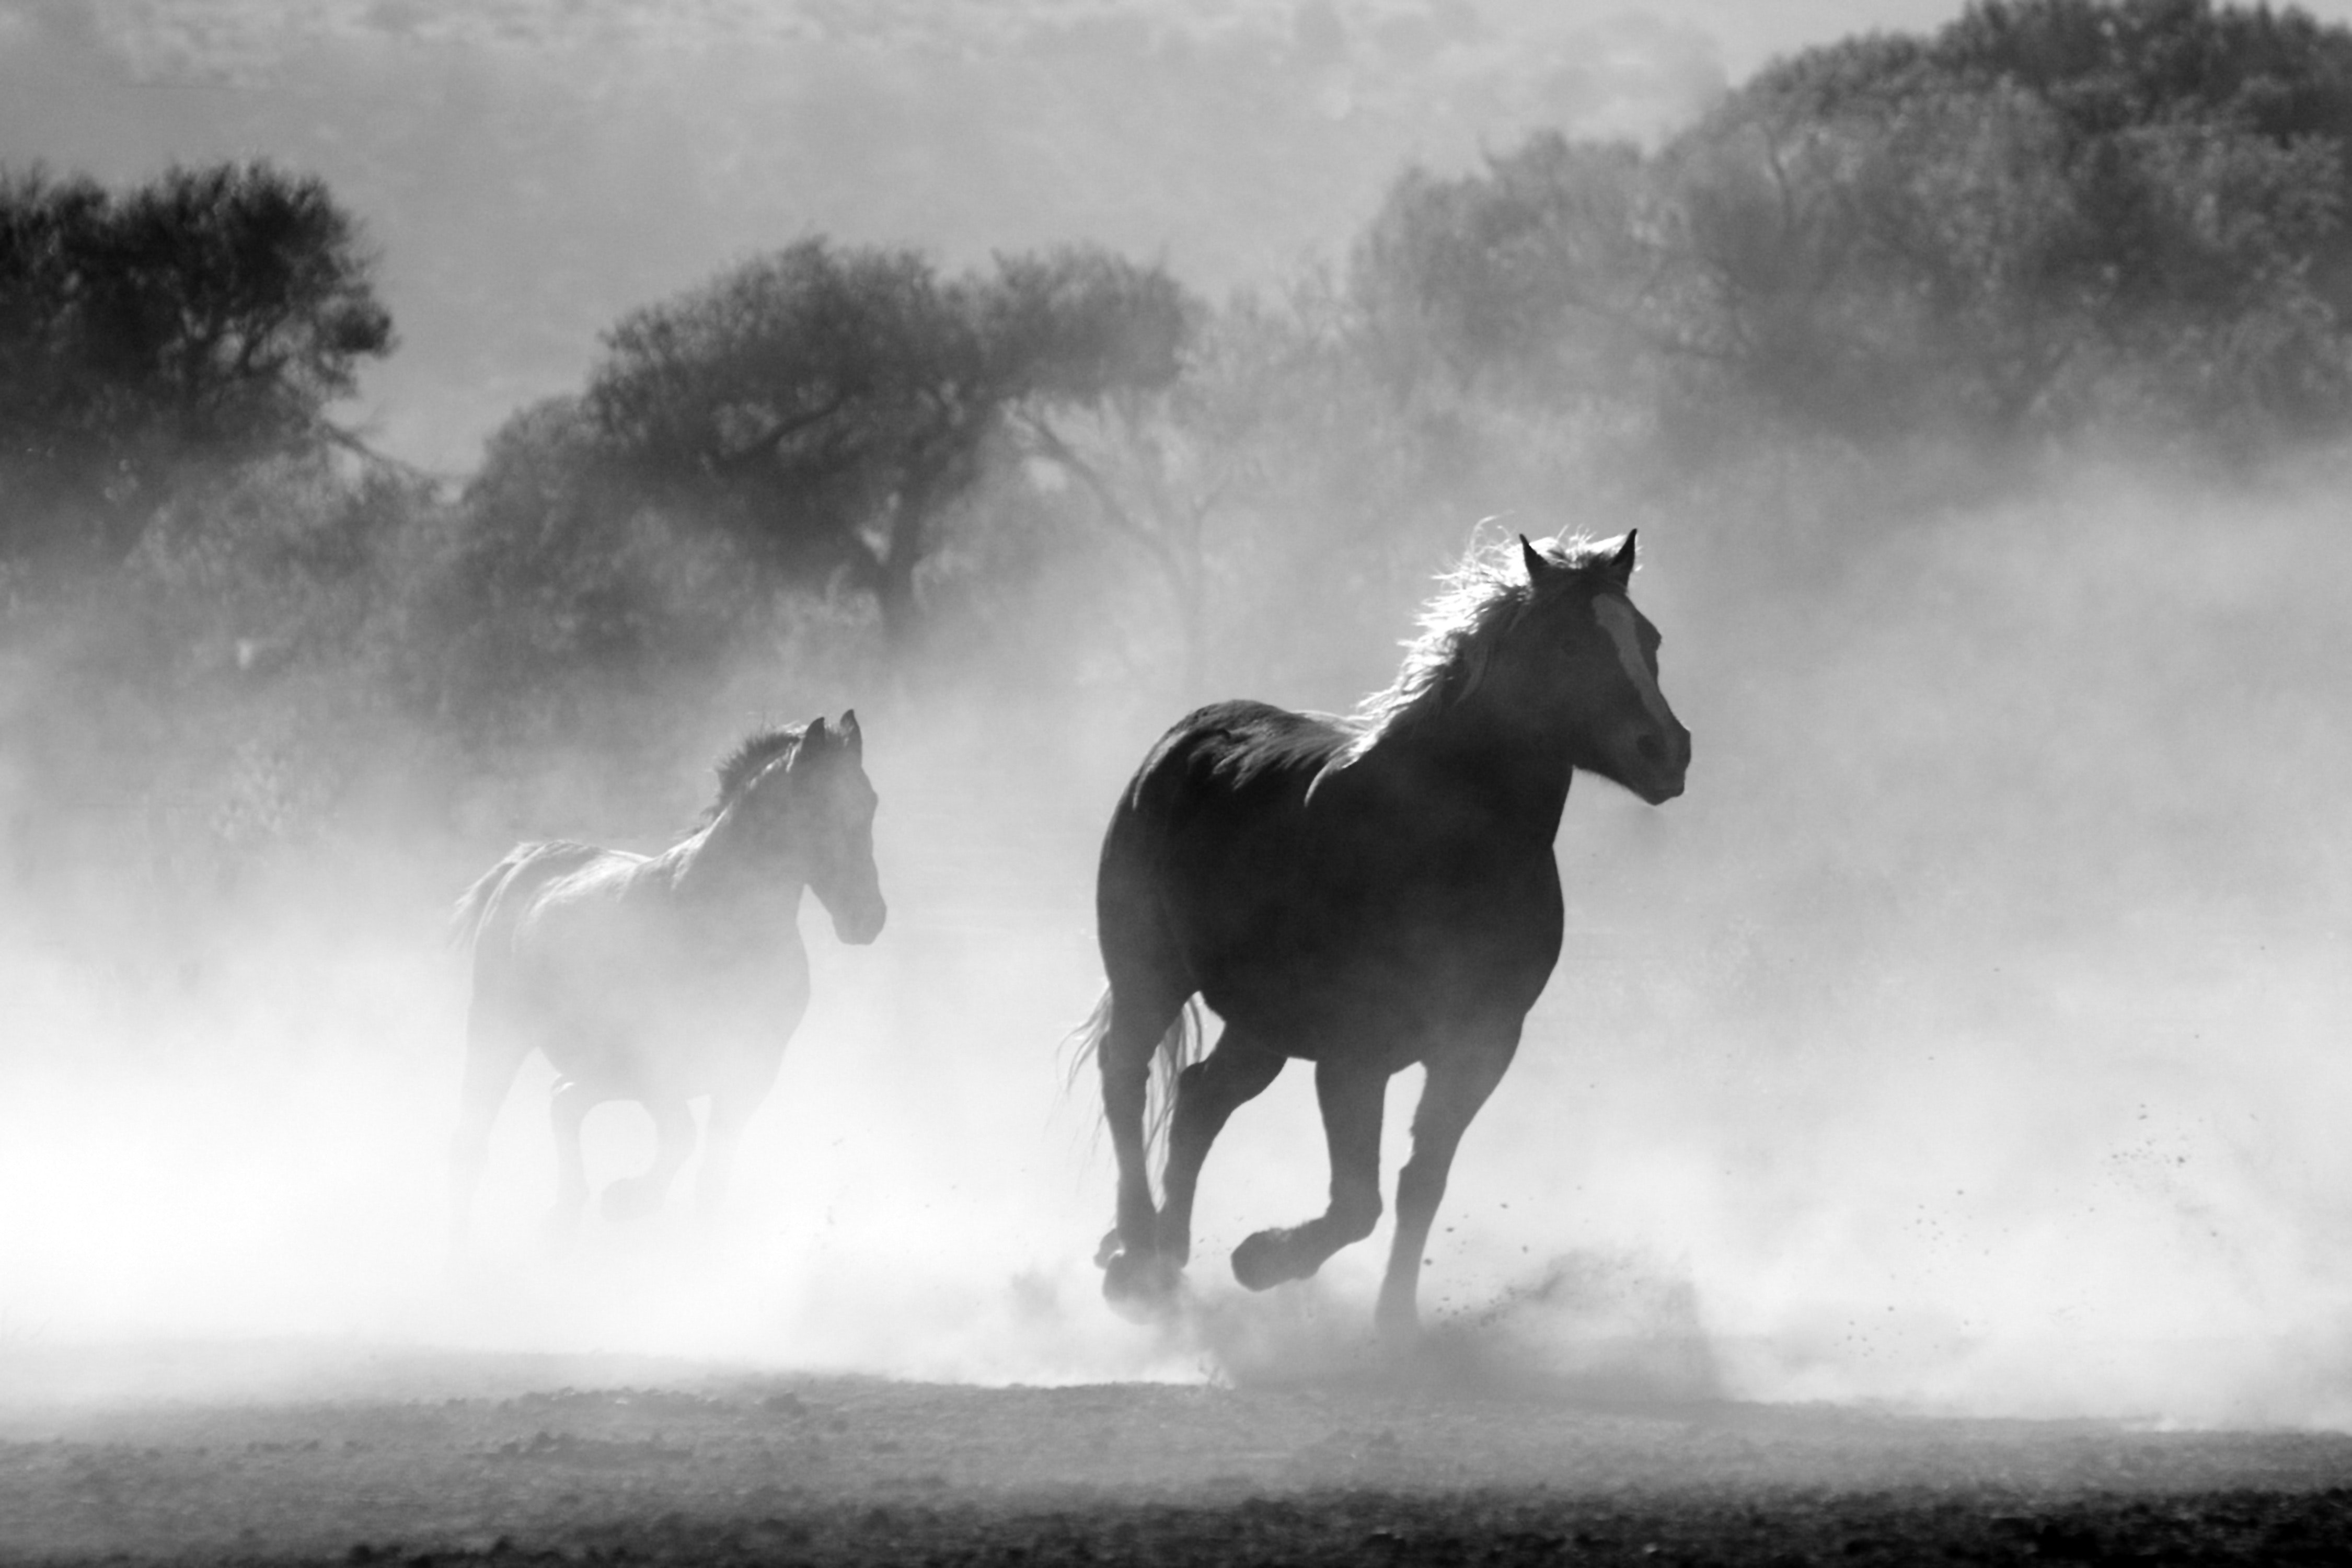 animals-black-and-white-equine-52500